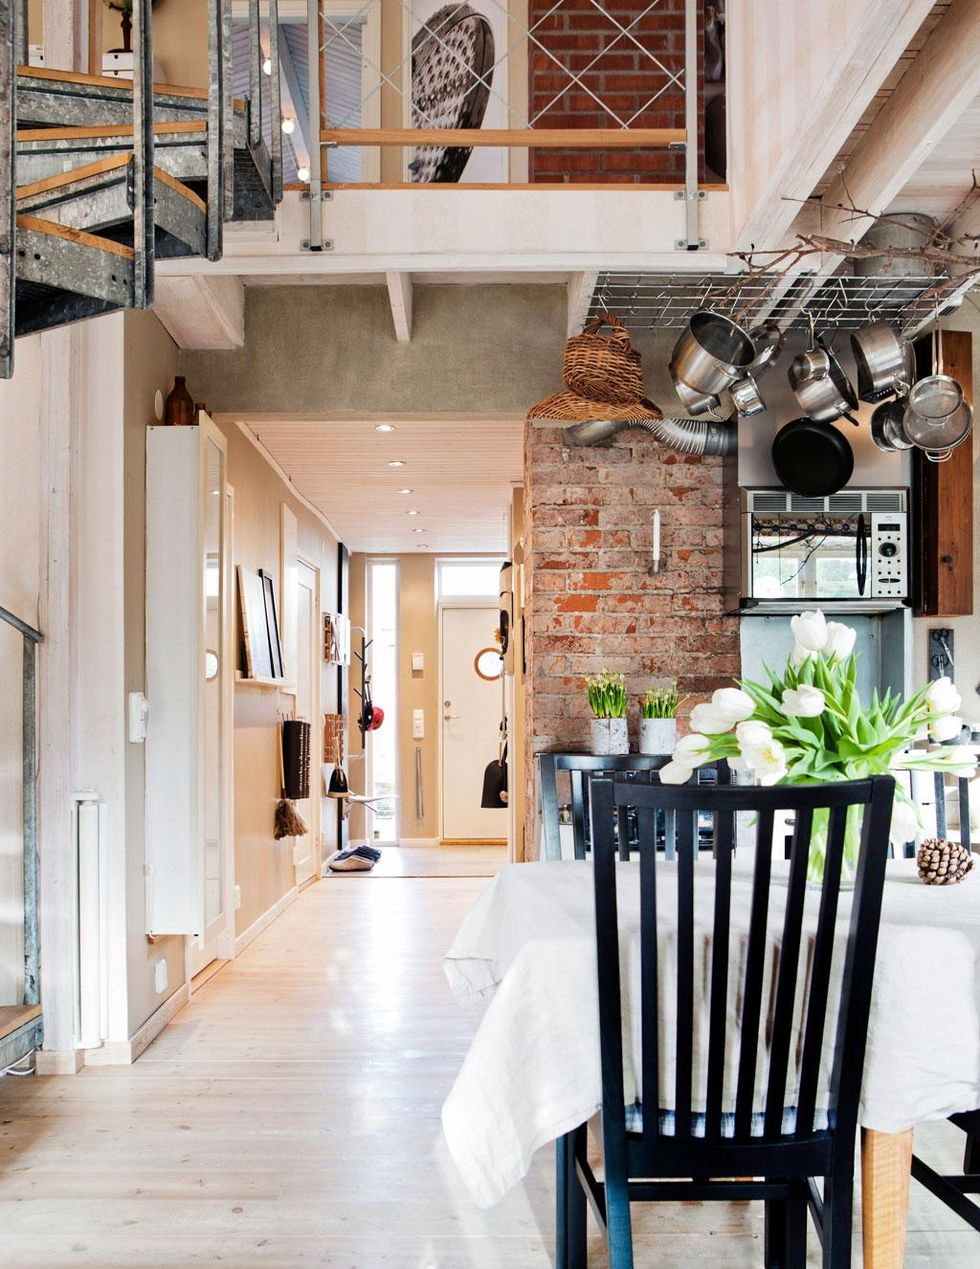 Inspiring Industrial Interiors That Features Exposed Brick Walls 3 exposed brick walls Inspiring Industrial Interiors That Features Exposed Brick Walls Inspiring Industrial Interiors That Features Exposed Brick Walls 3